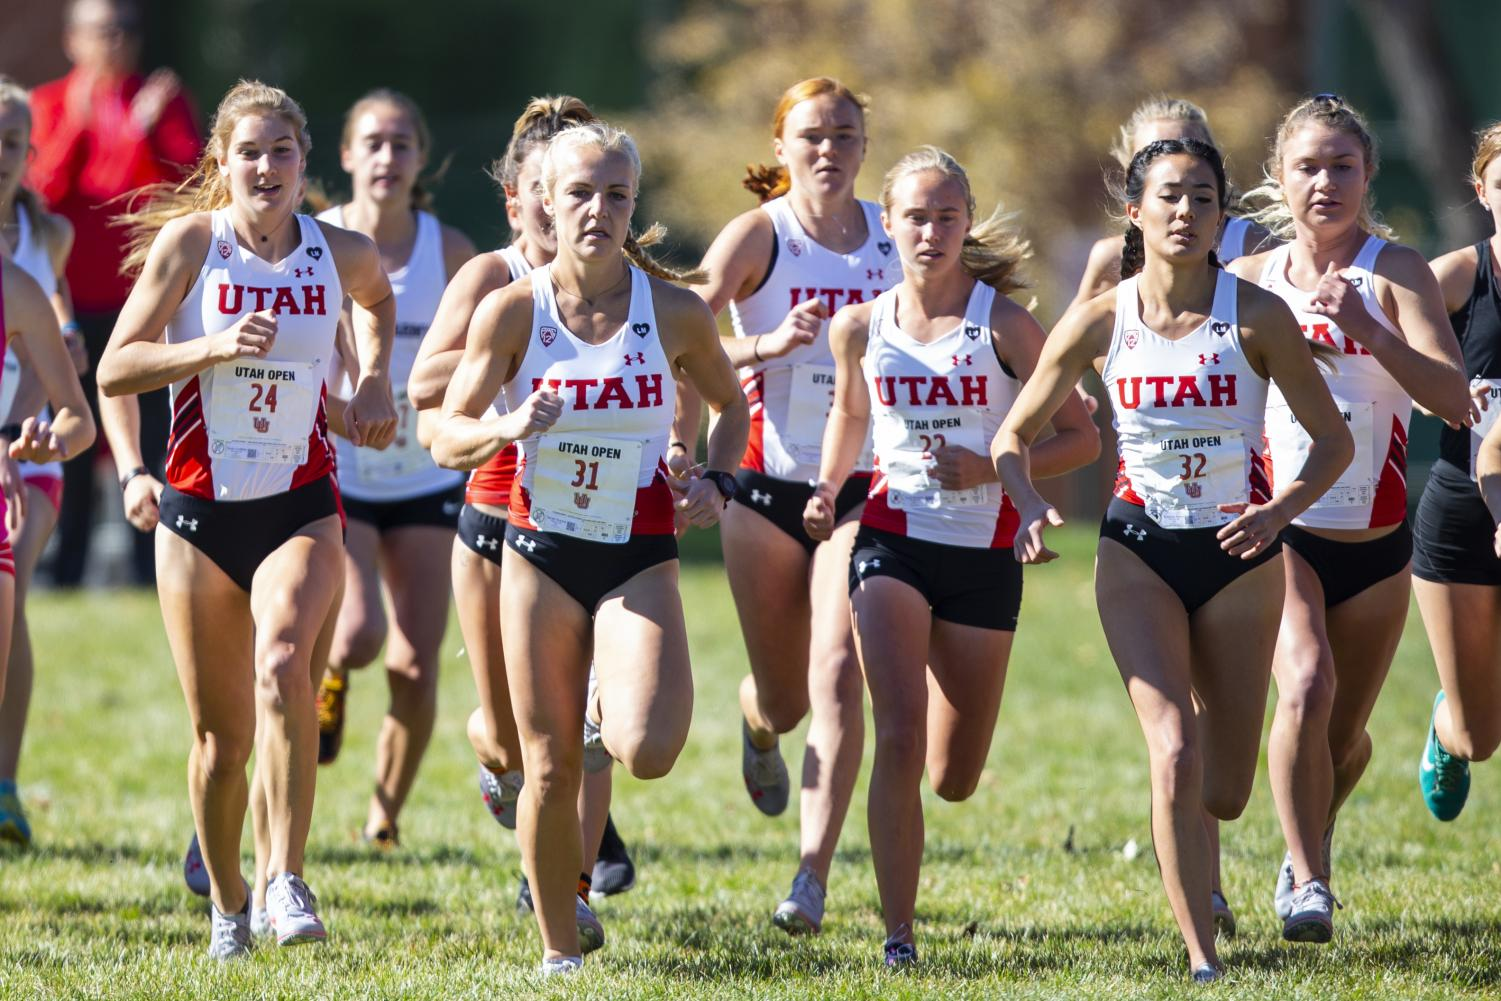 The University of Utah Cross Country Team during the Women's 5K run at the Utah Open in an NCAA Cross Country Meet at Sunnyside Park in Salt Lake City, UT on Friday October 25, 2019. (Photo by Curtis Lin | Daily Utah Chronicle)